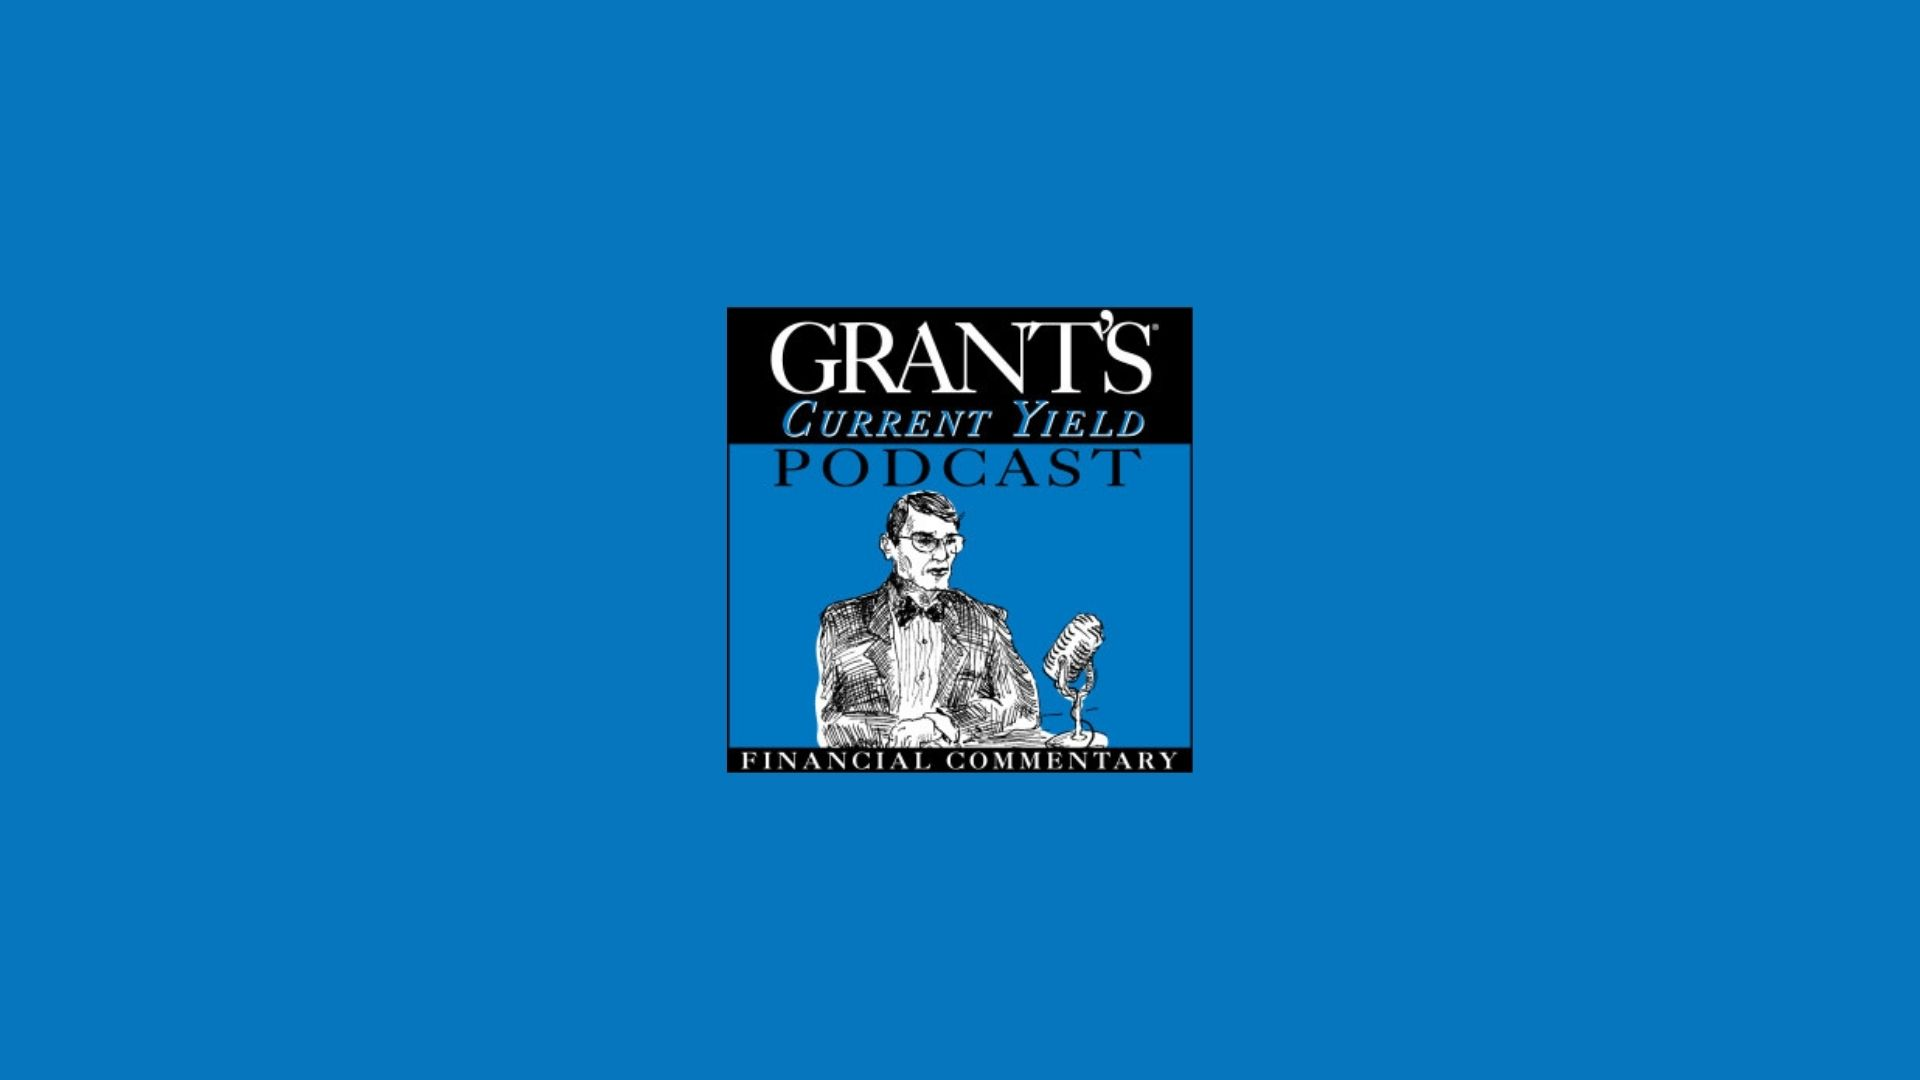 Grant's Current Yield Podcast: All about SPACs